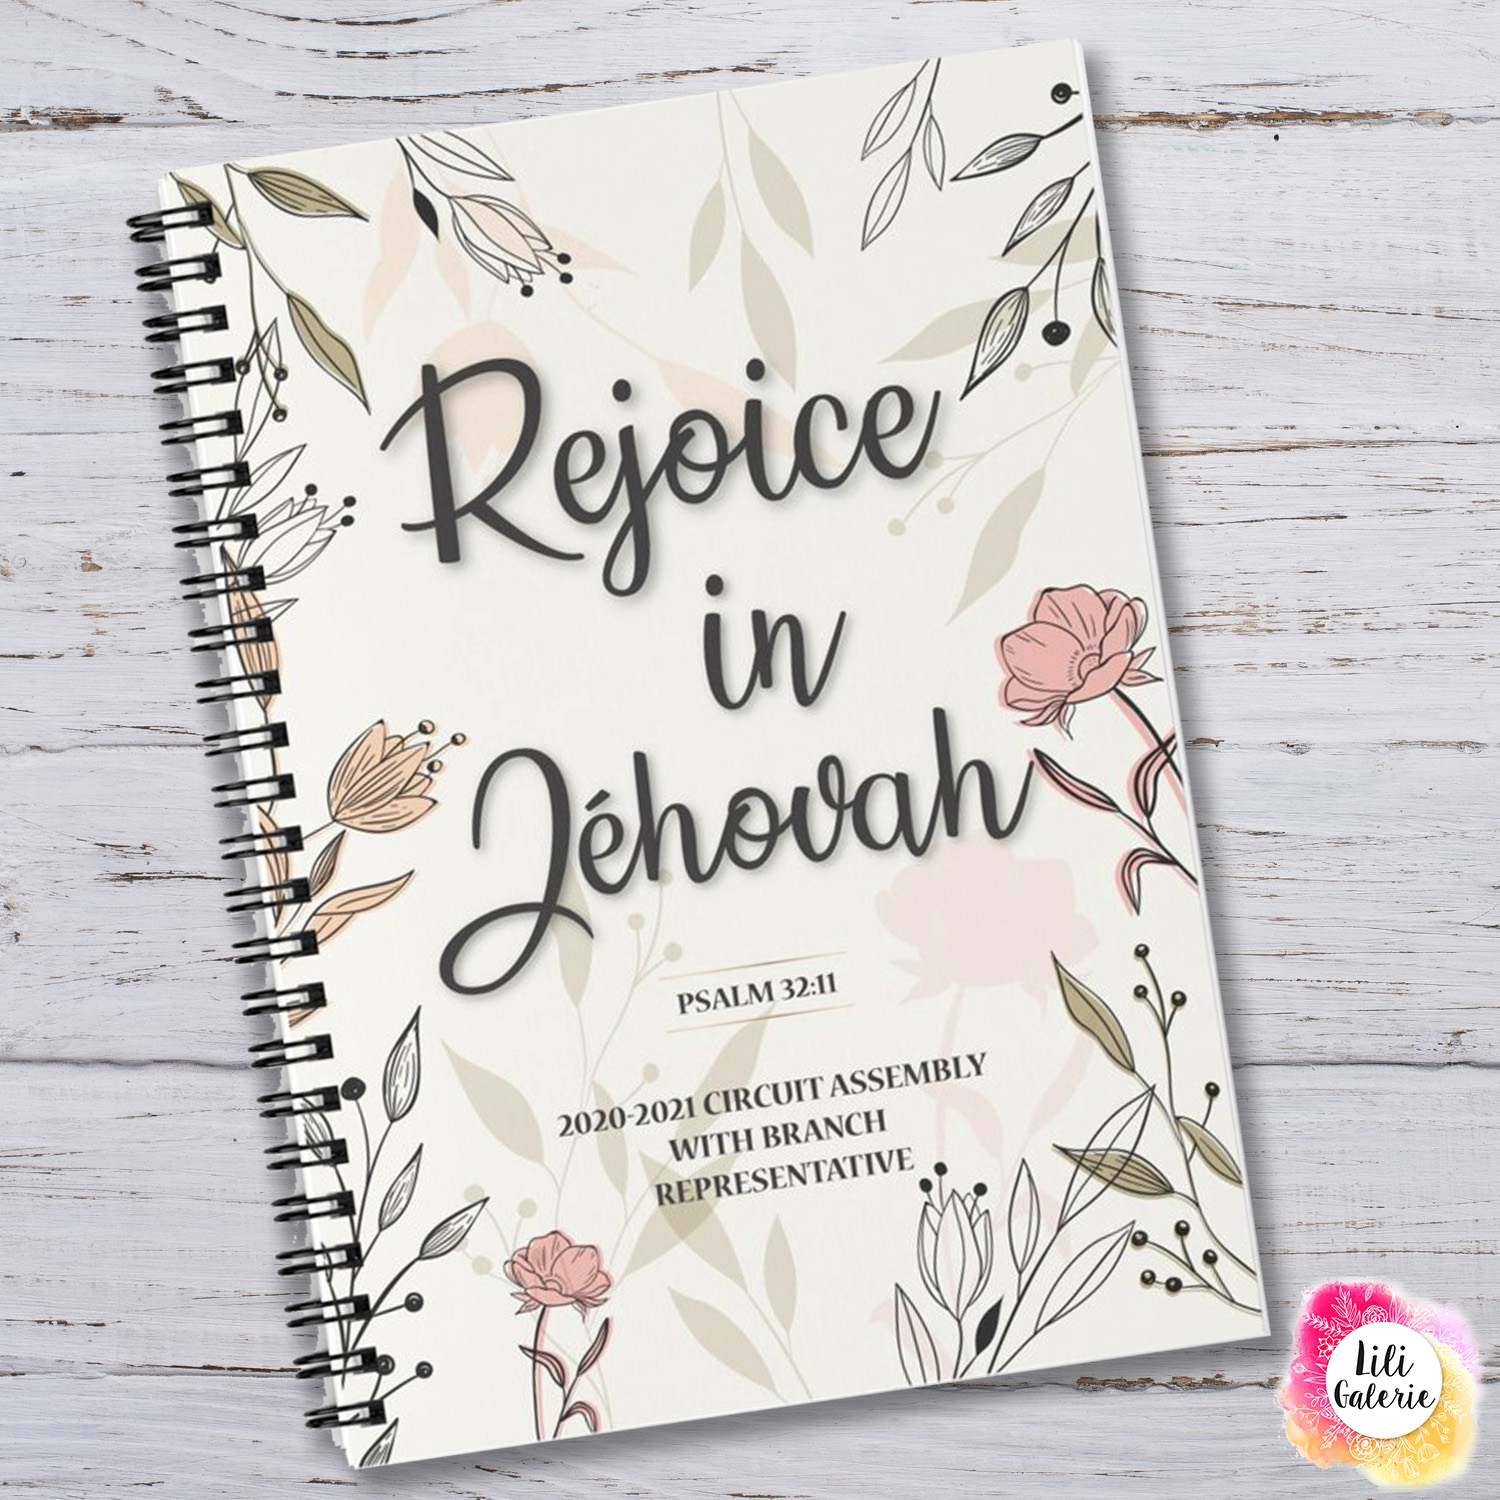 LiliGalerie -Circuit Assembly 2020-2021-Rejoice in Jehovah